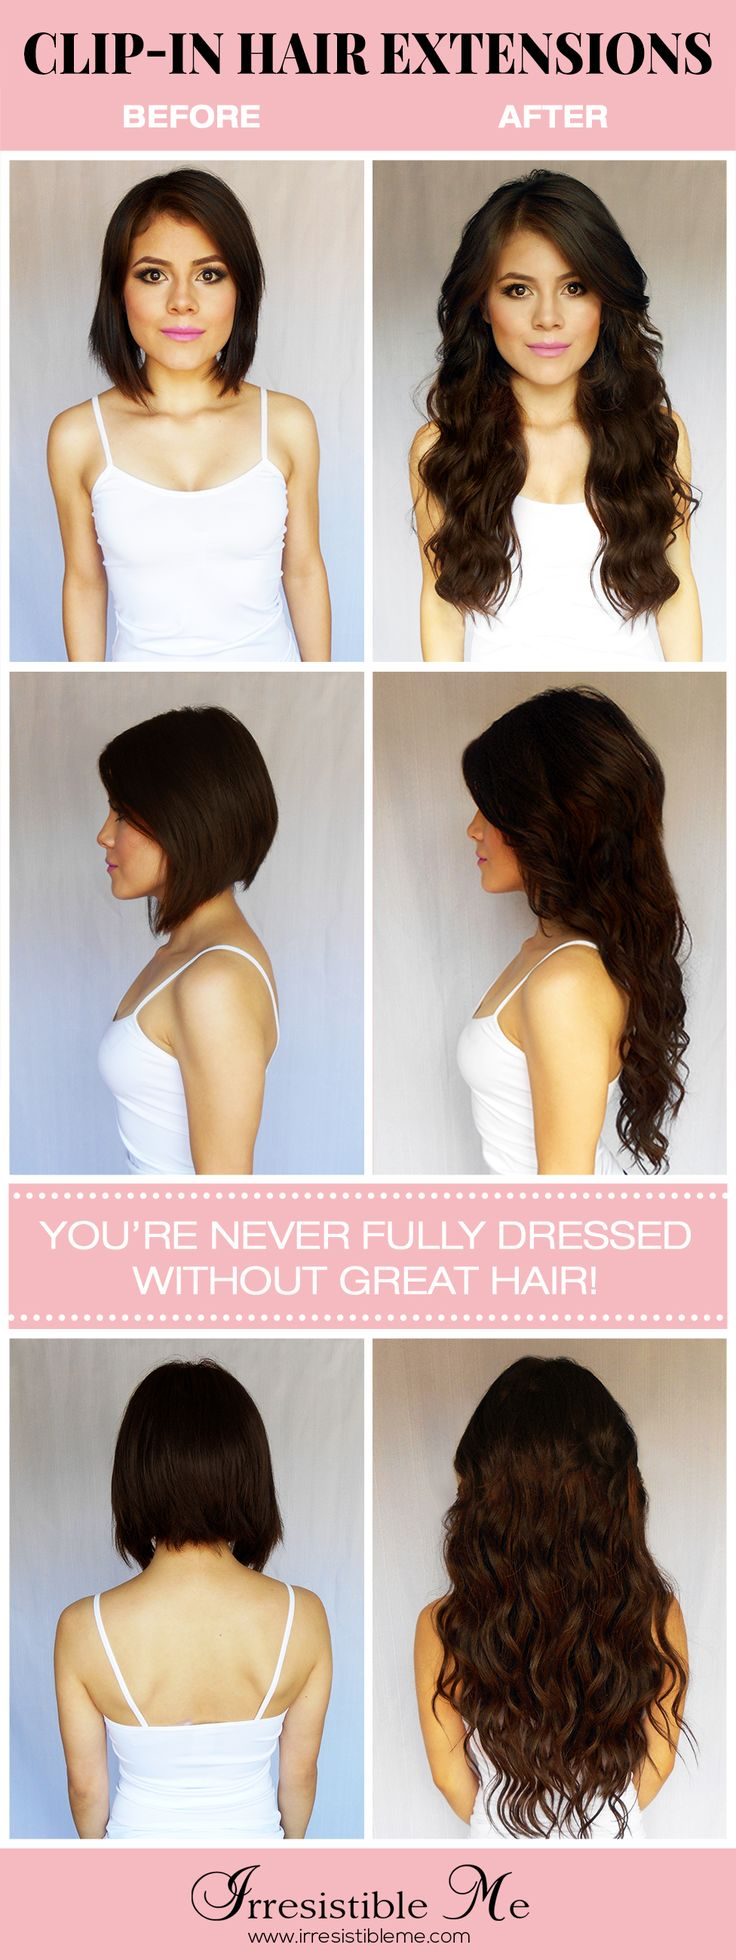 Best 25 short hair extensions ideas on pinterest balayage hair get long hair in less than 5 minutes with irresistible me human remy clip in hair extensions the before and after change is totally awesome and nobody will pmusecretfo Gallery